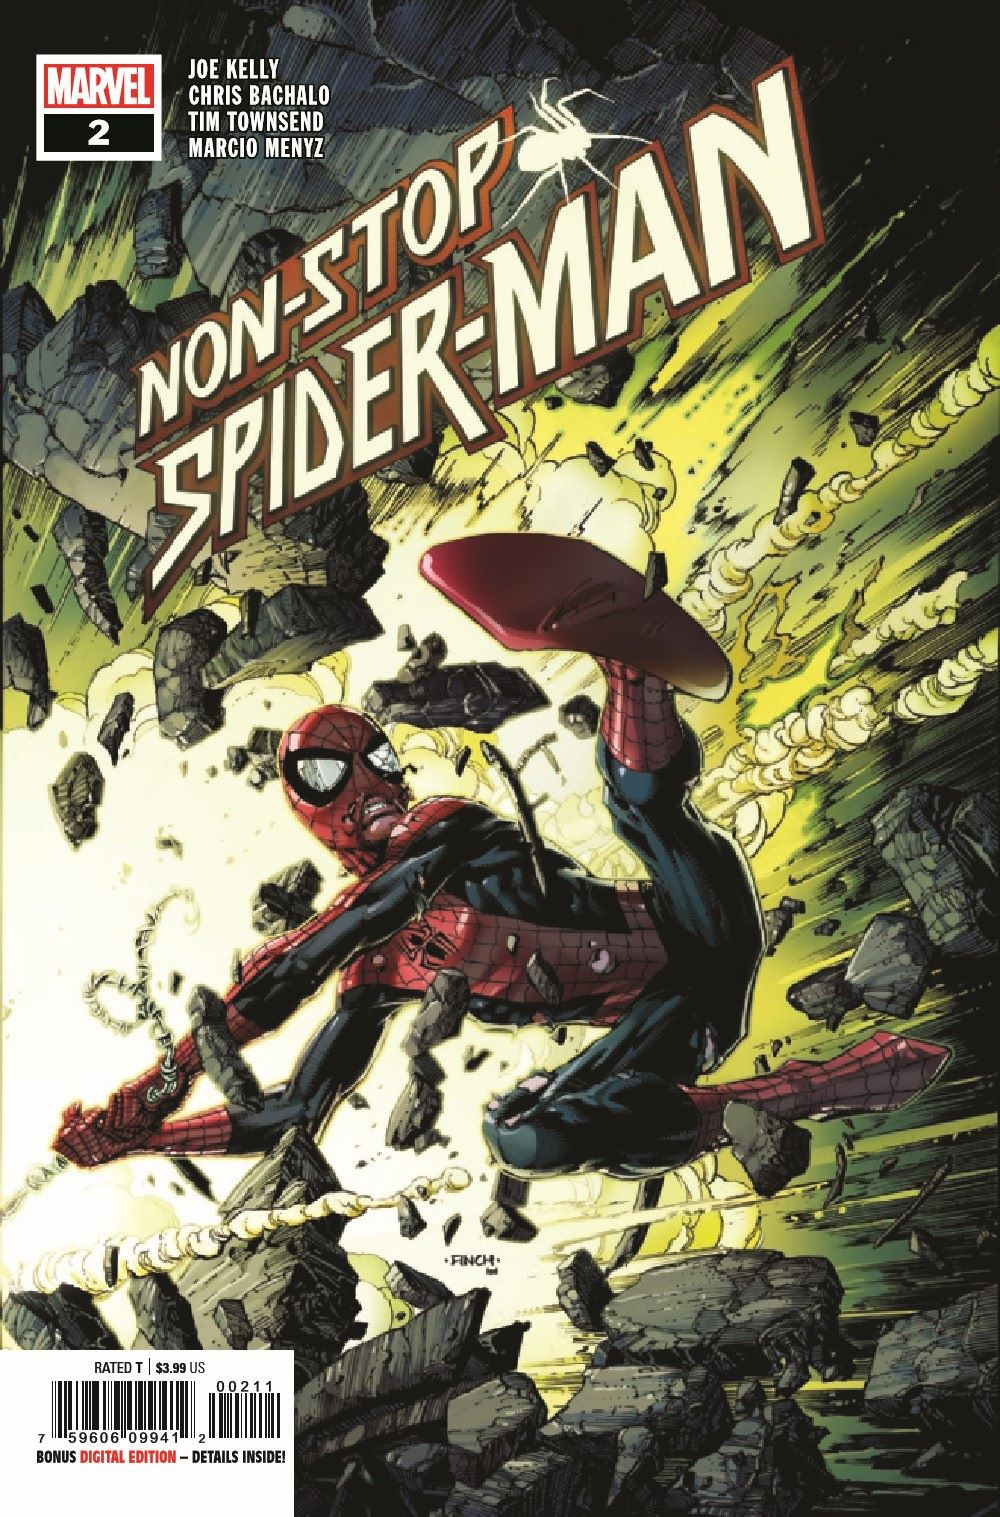 NONSTOPSM2021002_Preview-1 ComicList Previews: NON-STOP SPIDER-MAN #2